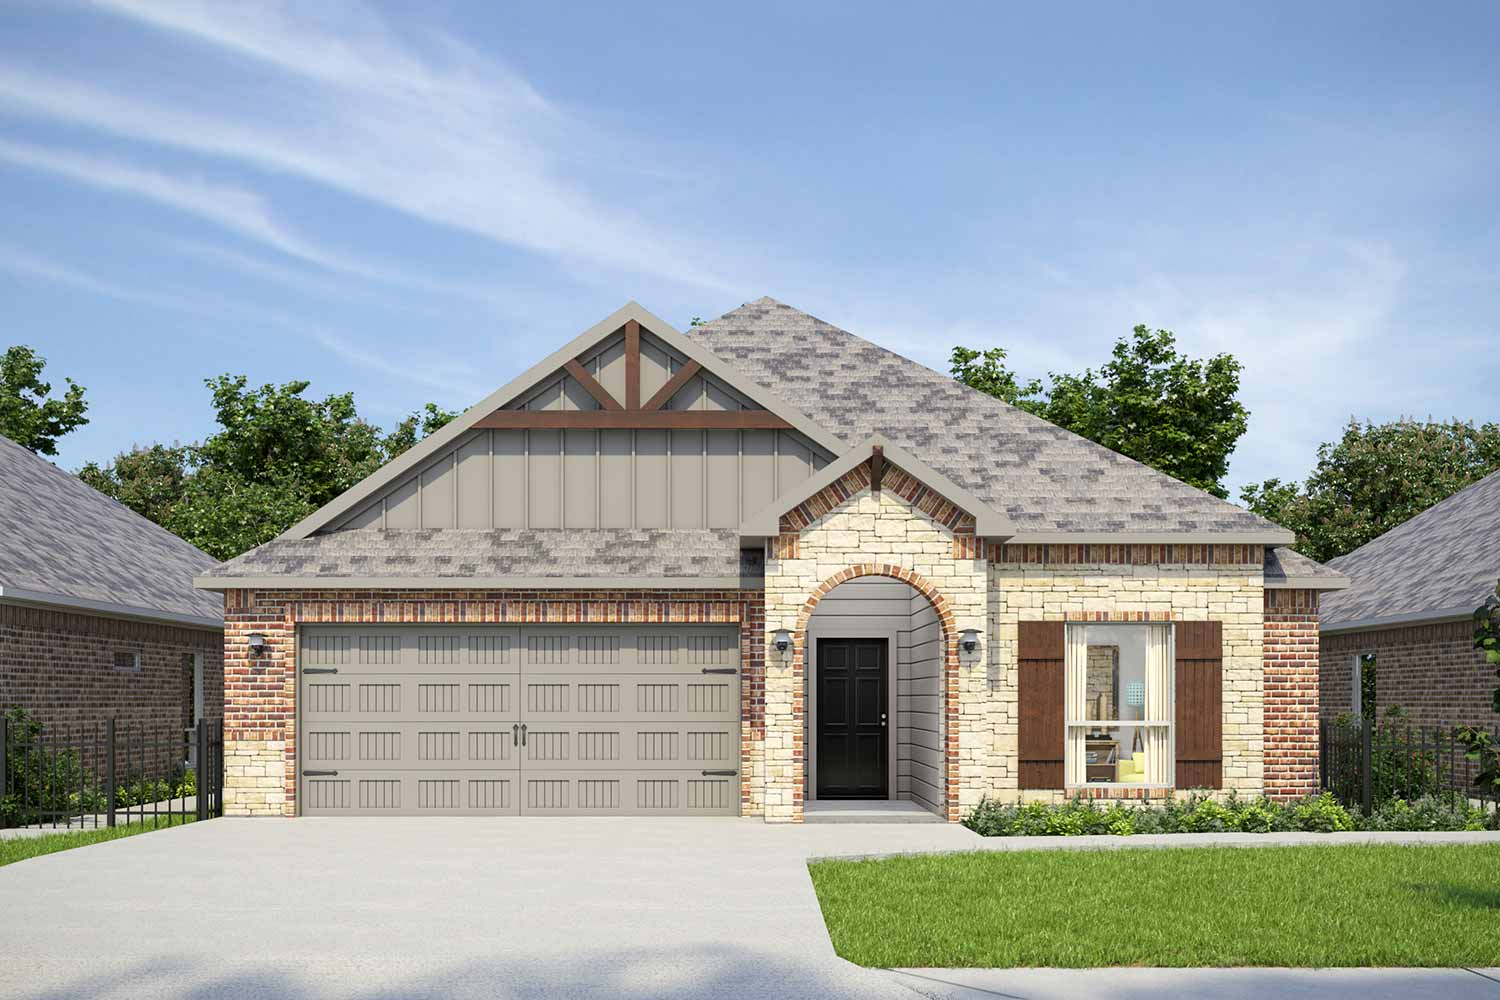 New Homes for Sale in Georgetown TX | 116 San View